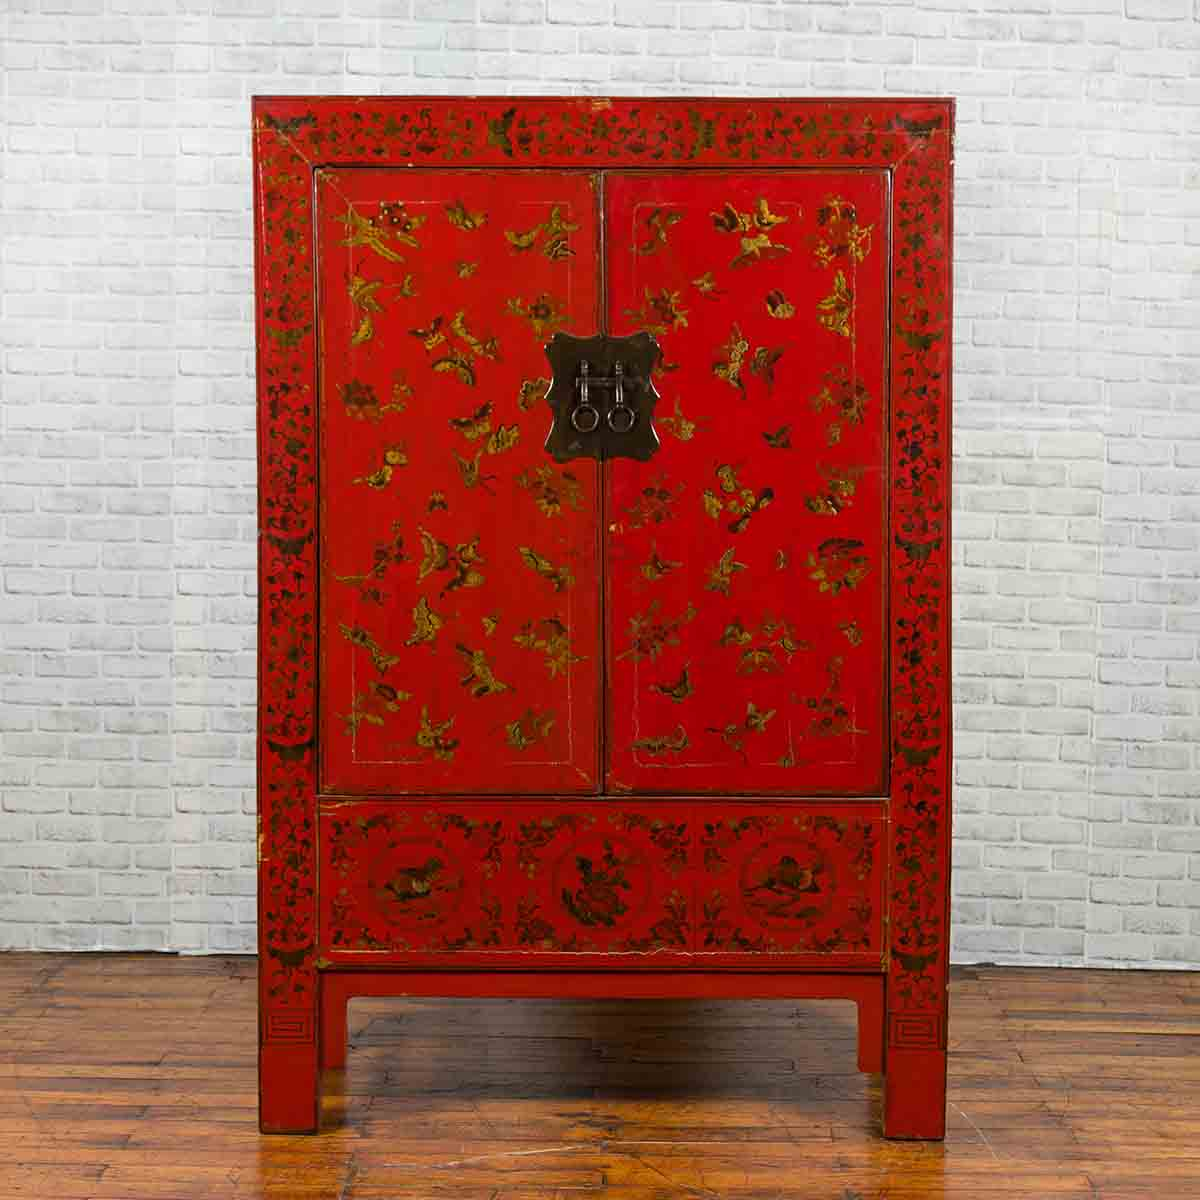 Chinese Red Lacquered 19th Century Qing Dynasty Cabinet with Gilt Chinoiseries